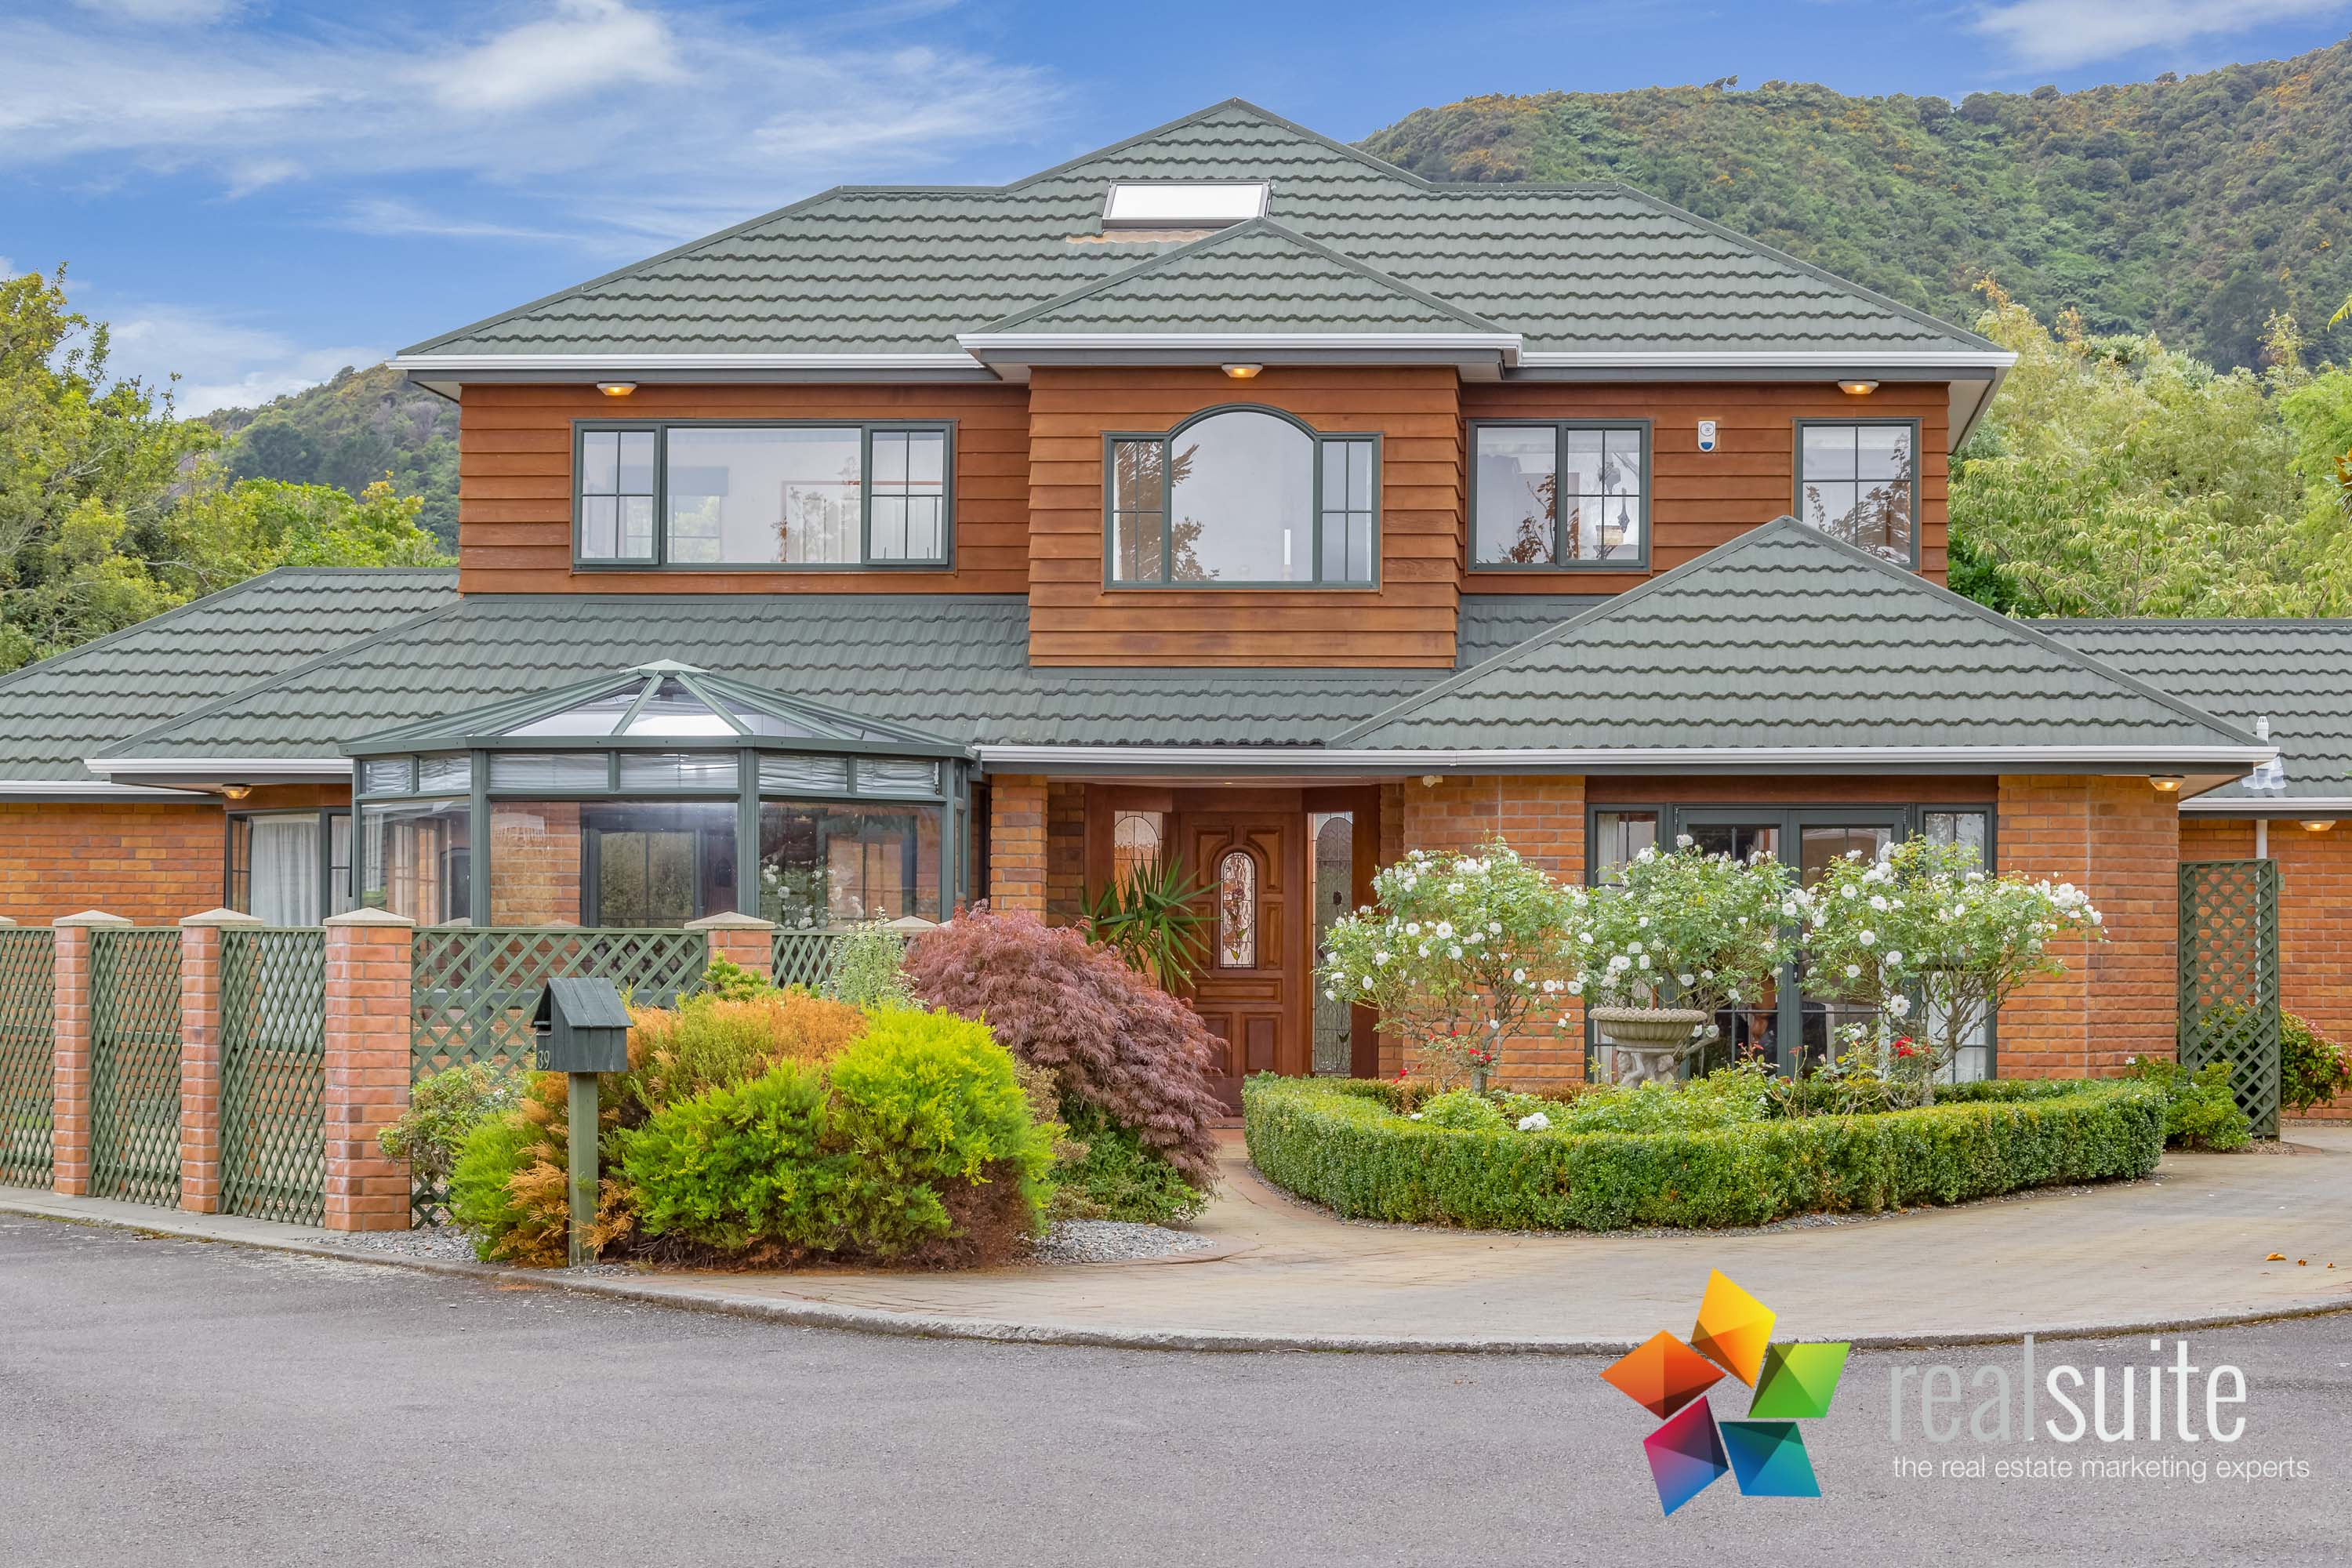 37,39 Rossiter Avenue, Lower Hutt 4393